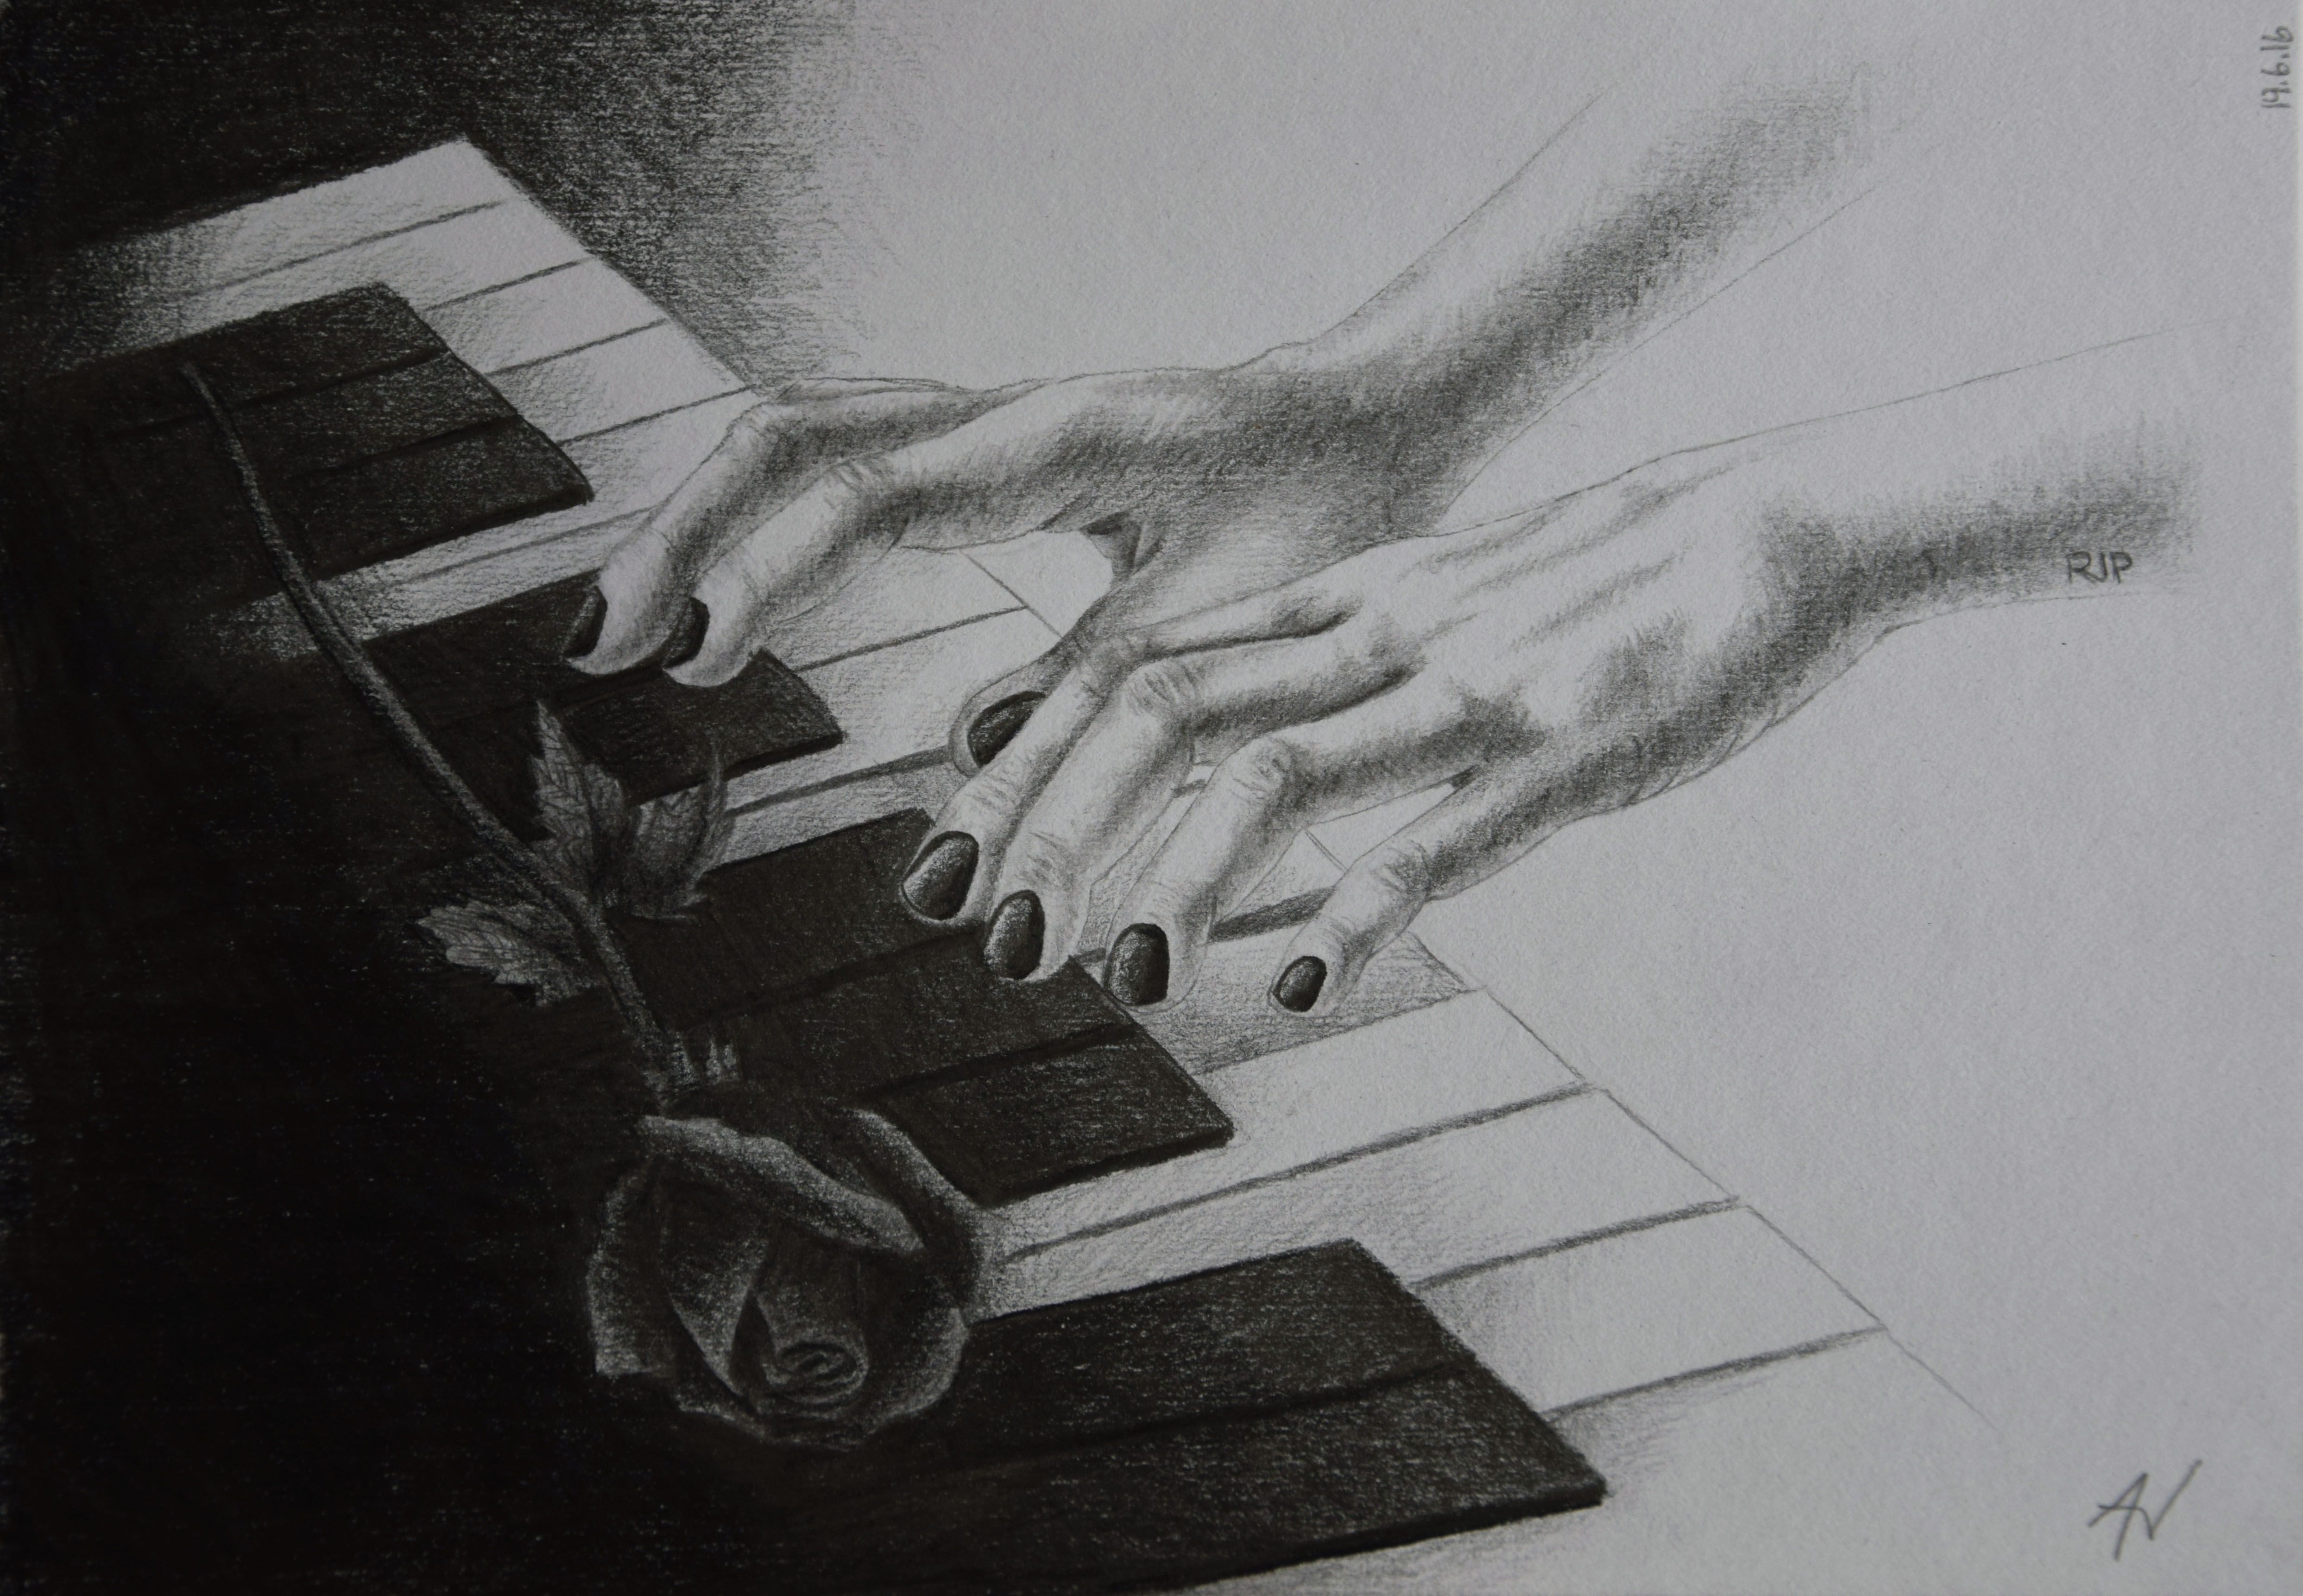 Pencil drawing of hands playing piano with dark rose on a funeral in memory of christina grimmie